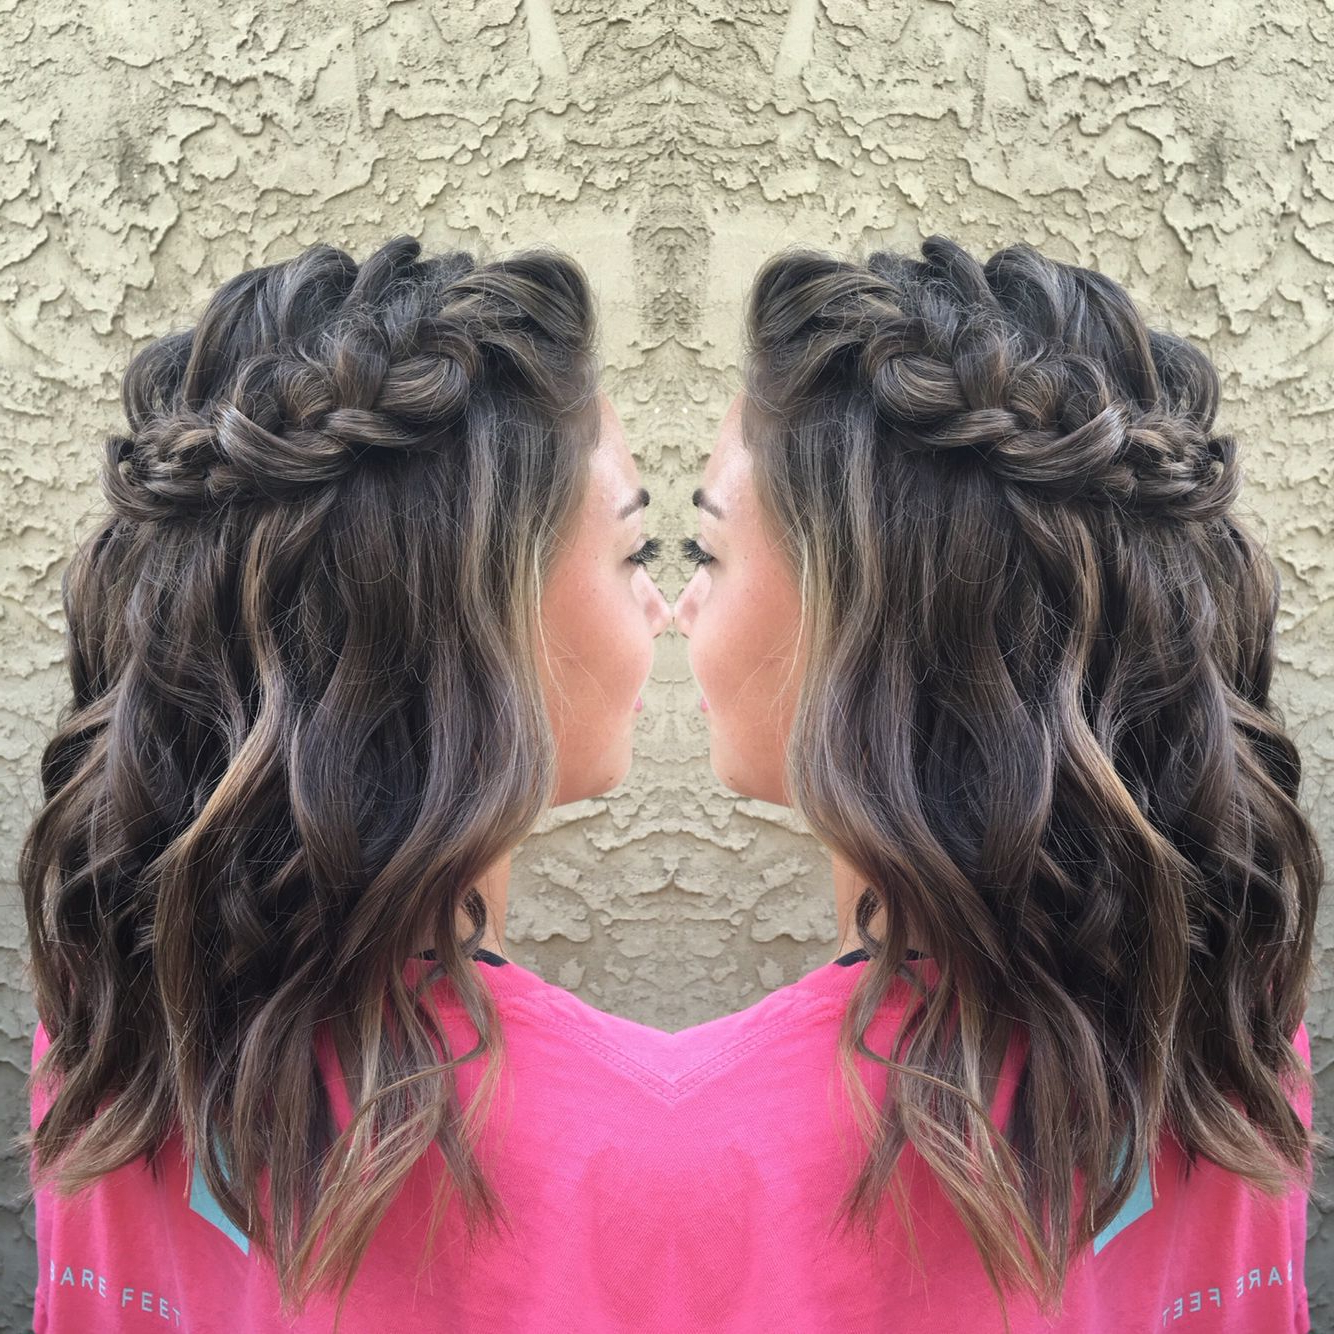 23 Most Stylish Homecoming Hairstyles   Hair And Beauty   Pinterest Pertaining To Homecoming Short Hair Styles (View 4 of 25)